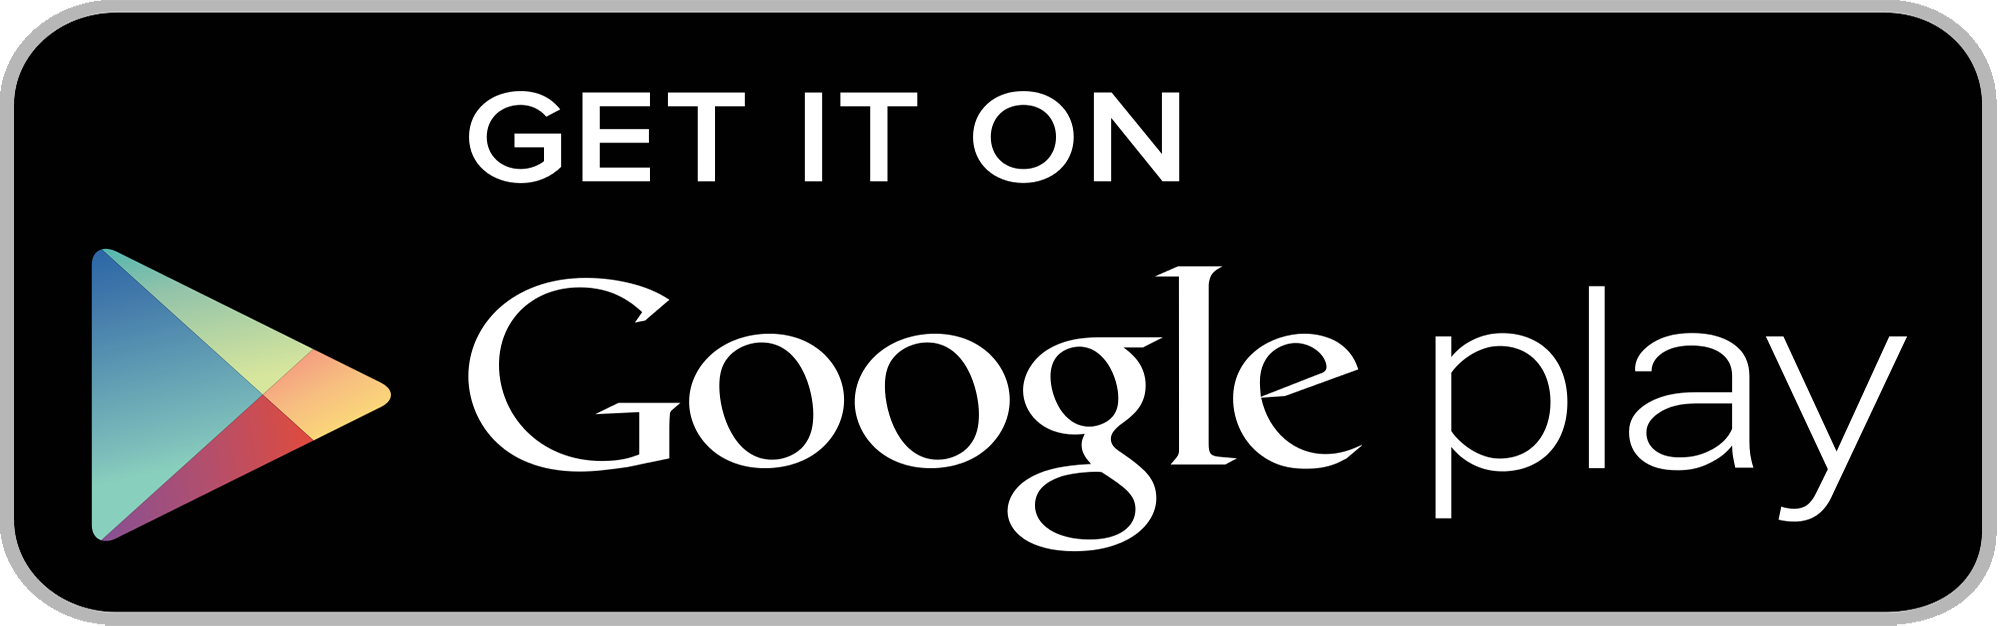 Get It On Google Play Badge PNG - 110342